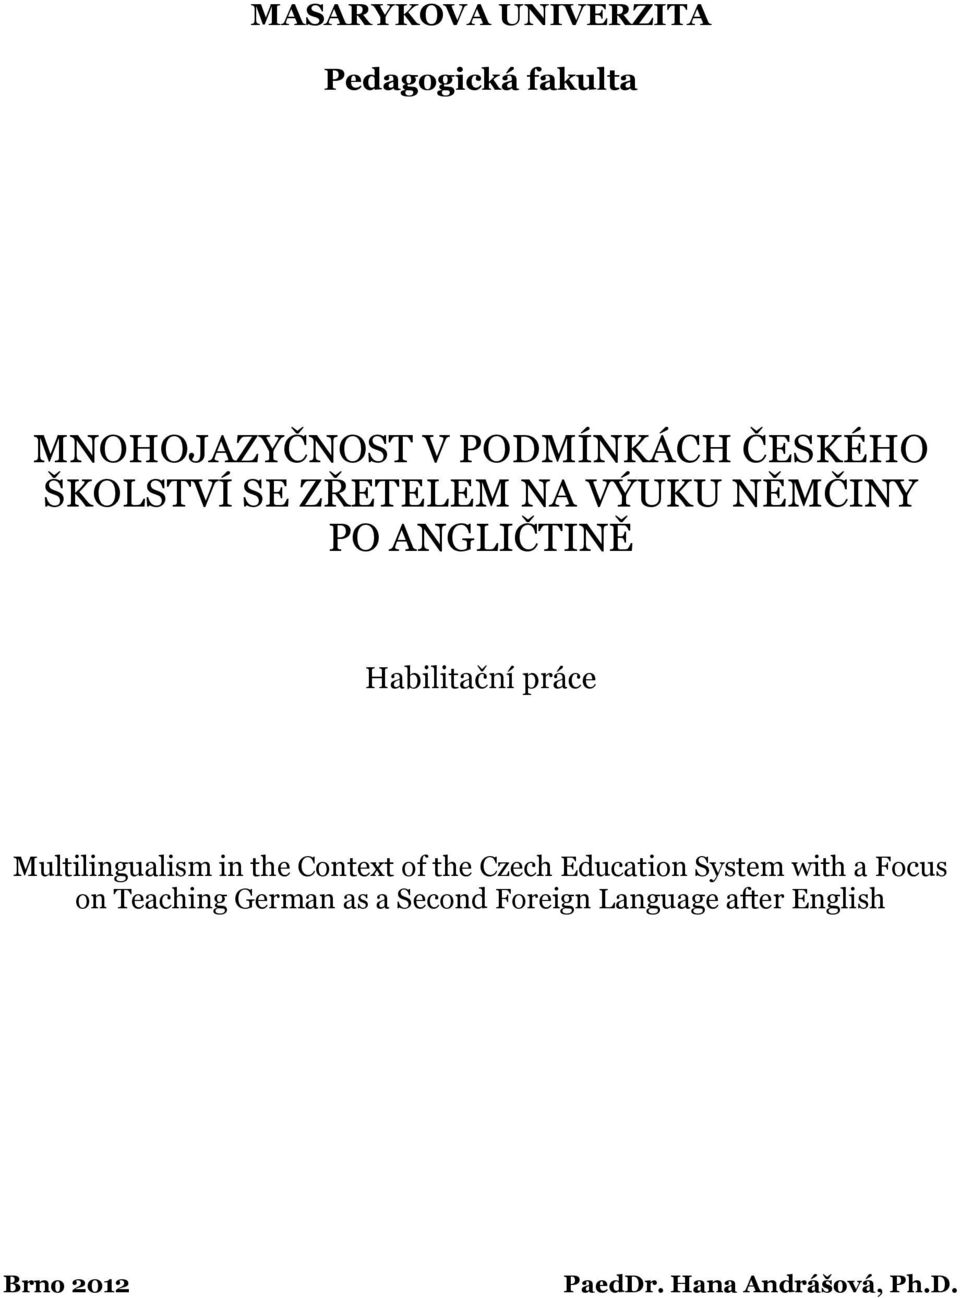 Multilingualism in the Context of the Czech Education System with a Focus on